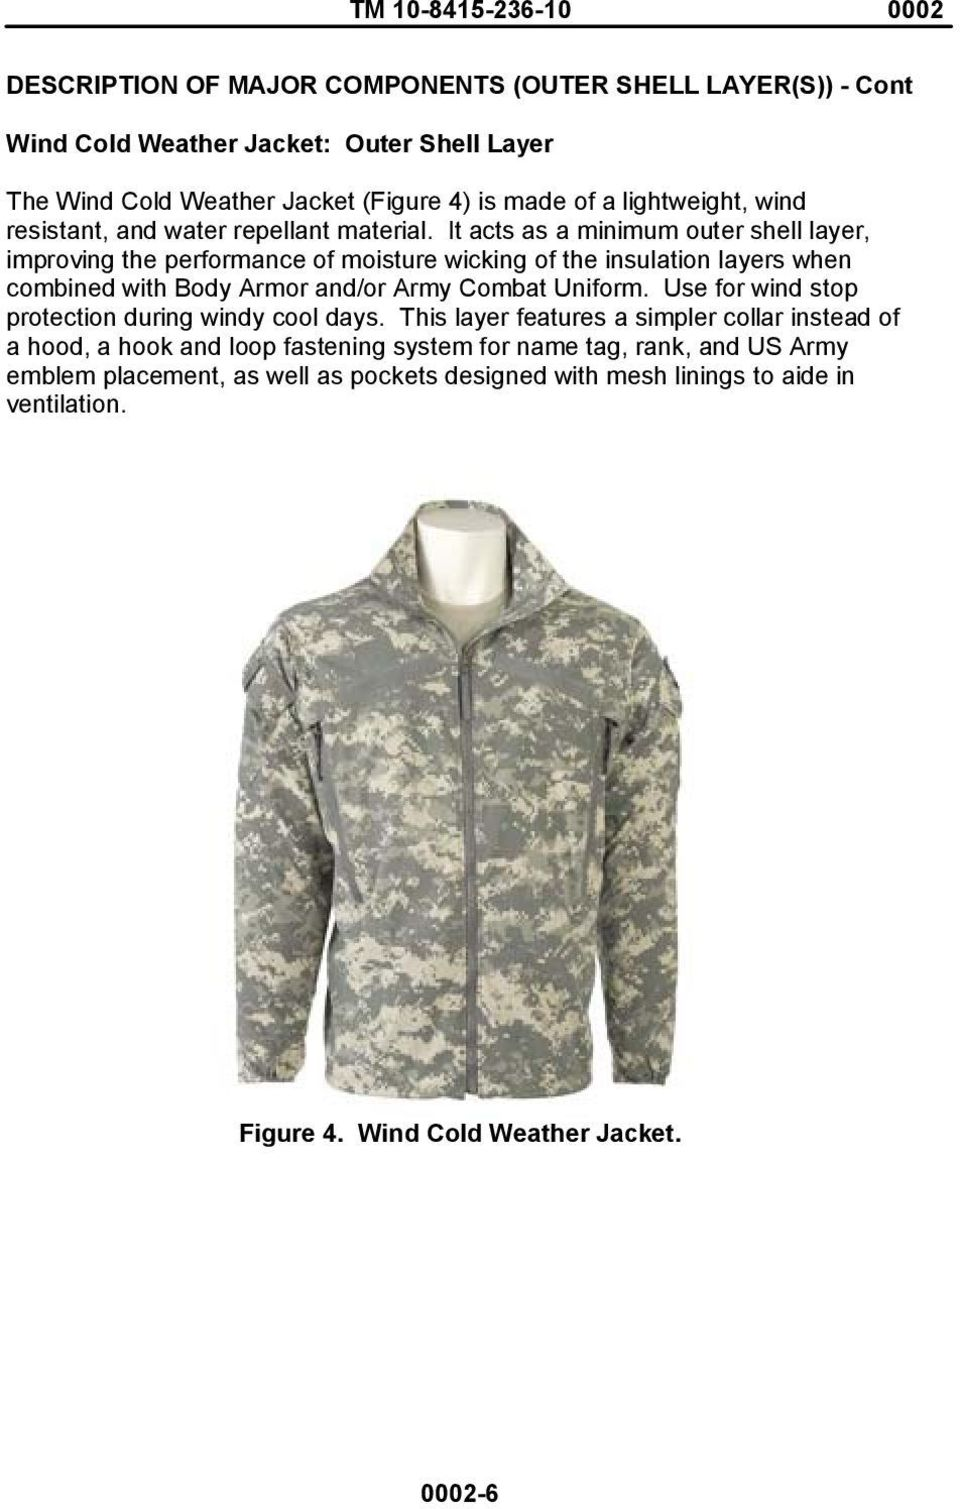 It acts as a minimum outer shell layer, improving the performance of moisture wicking of the insulation layers when combined with Body Armor and/or Army Combat Uniform.